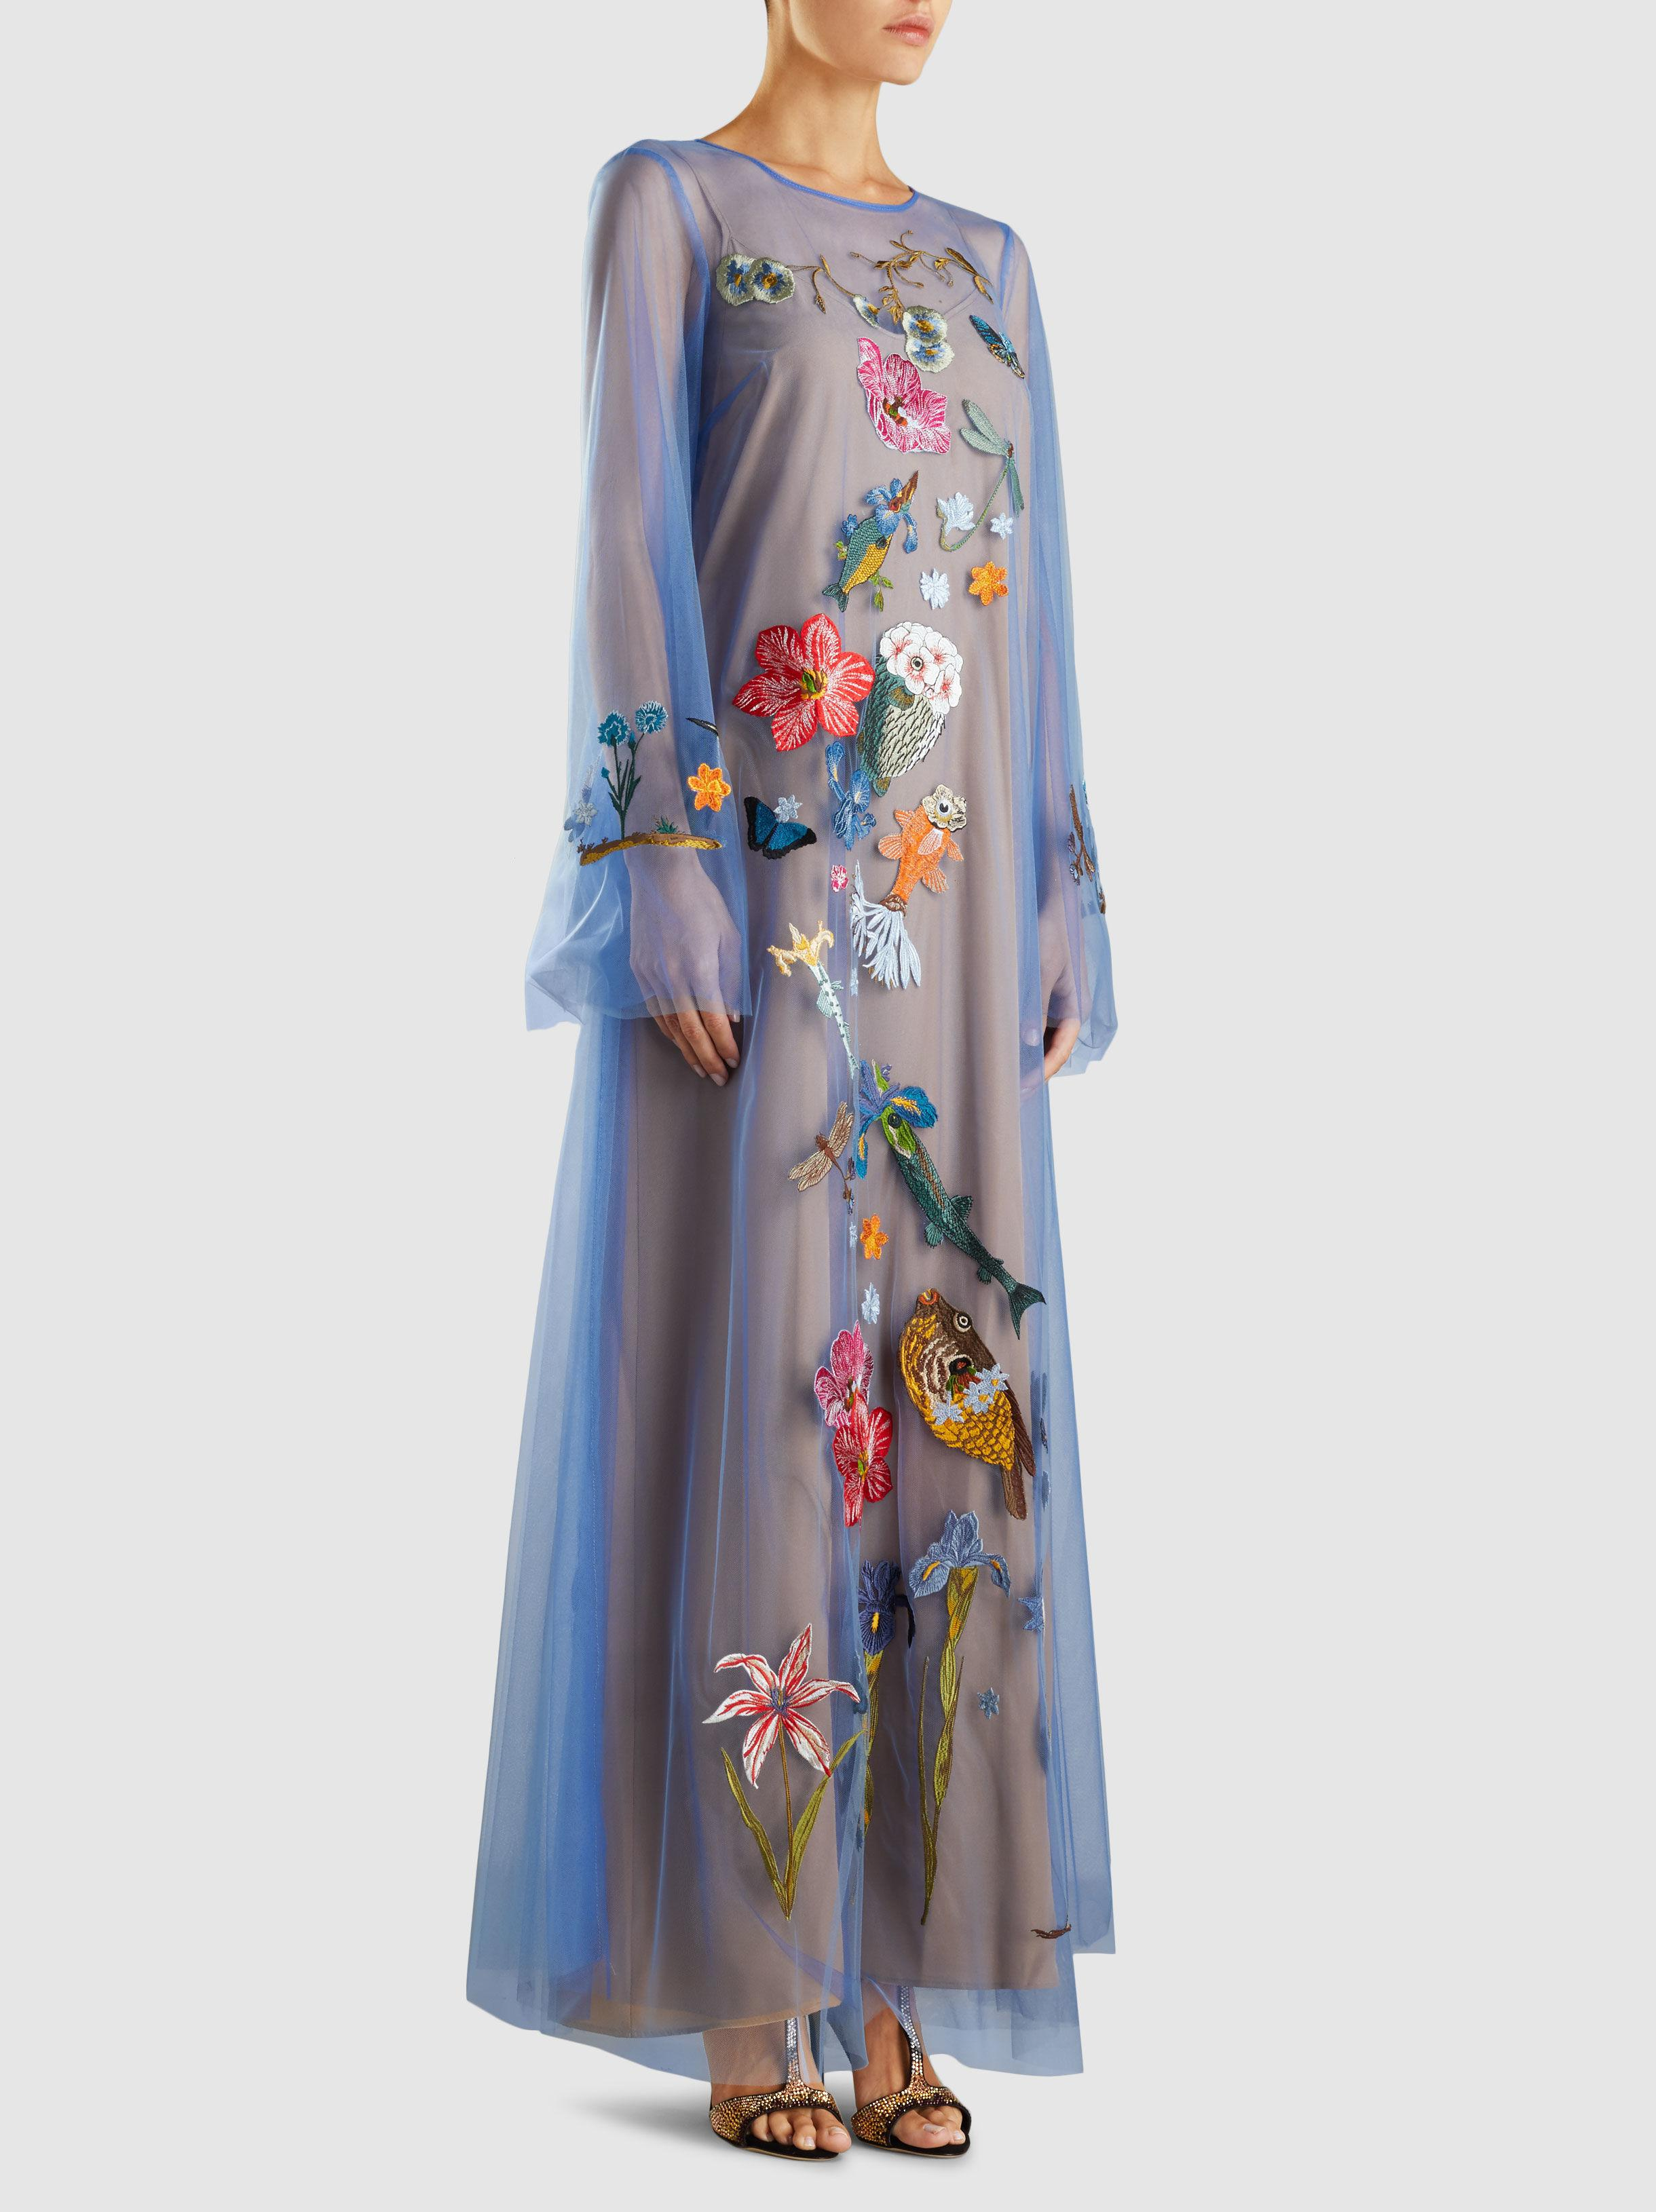 Aldib Embroidered Long Sleeve Dress Vivetta mD5aHV